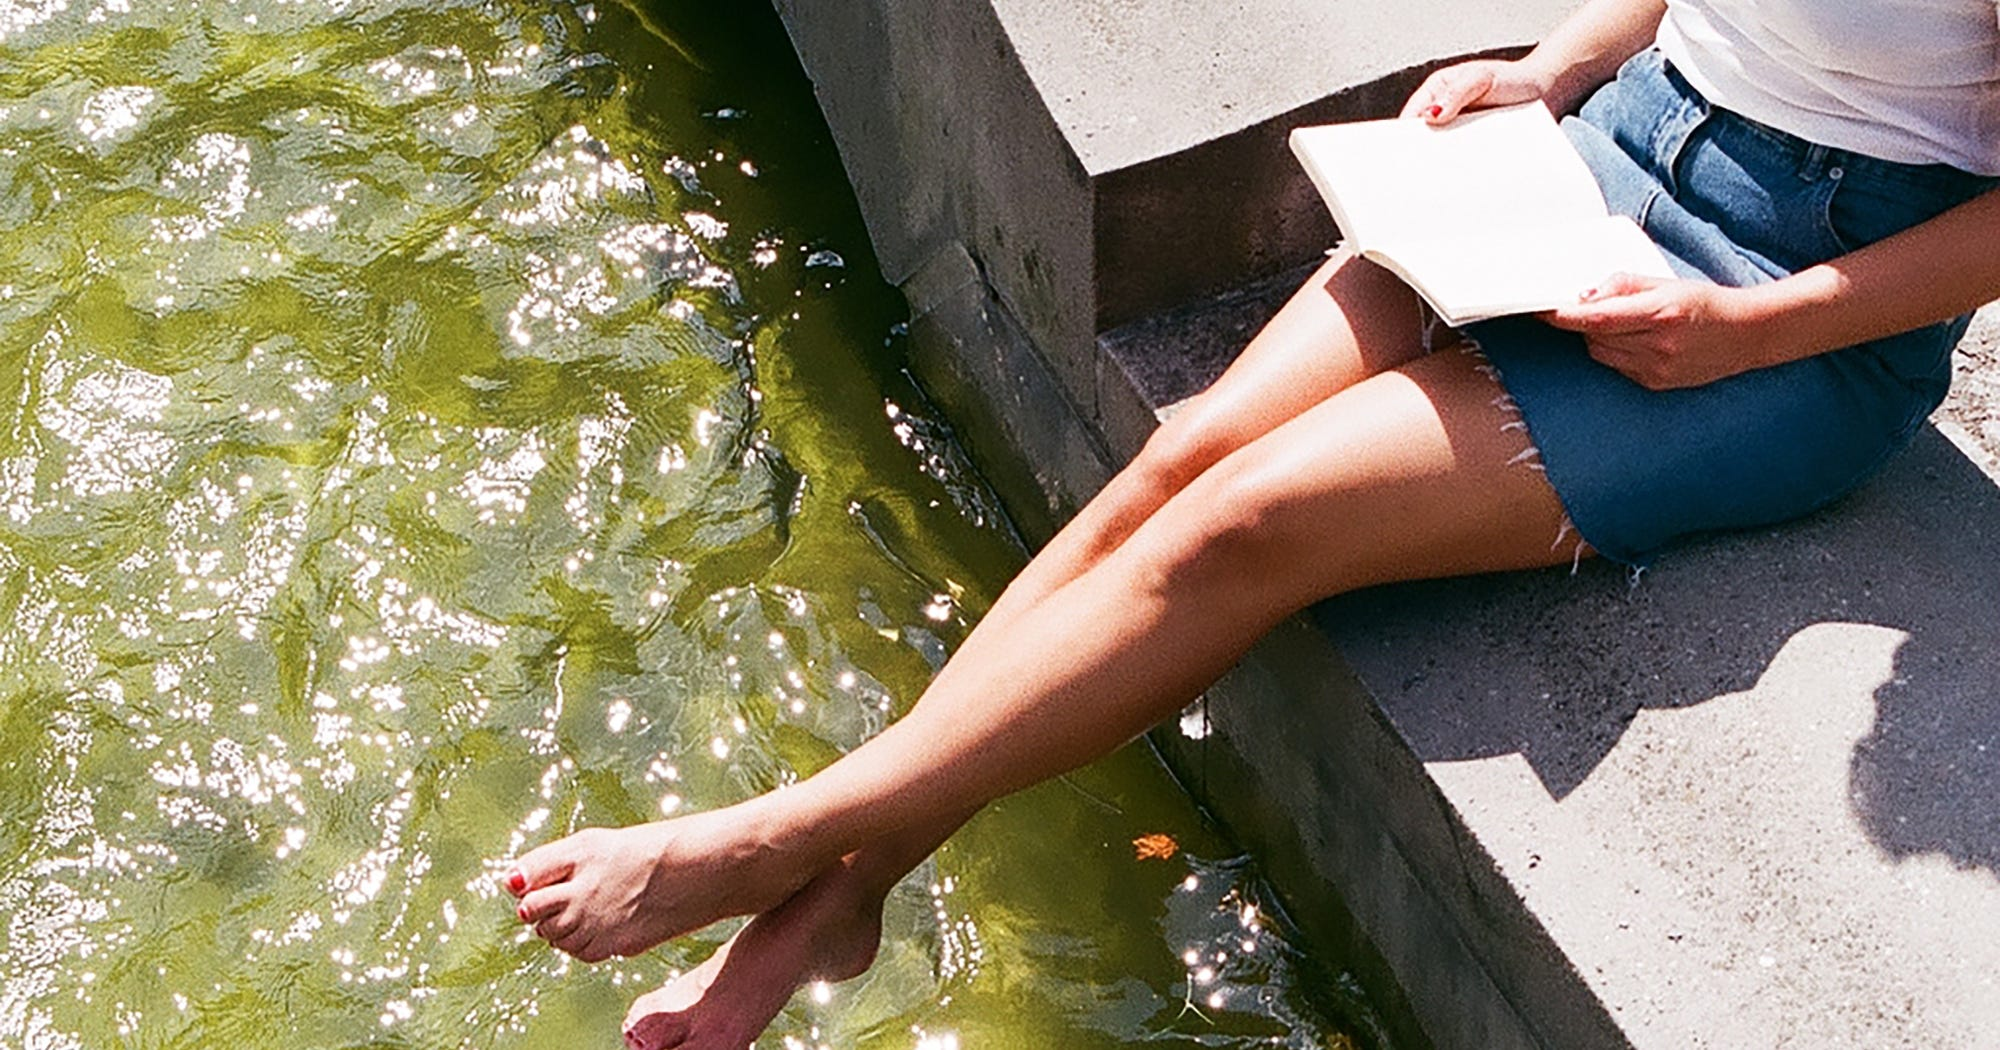 R29's Summer Book Recommendations To Read By The Pool